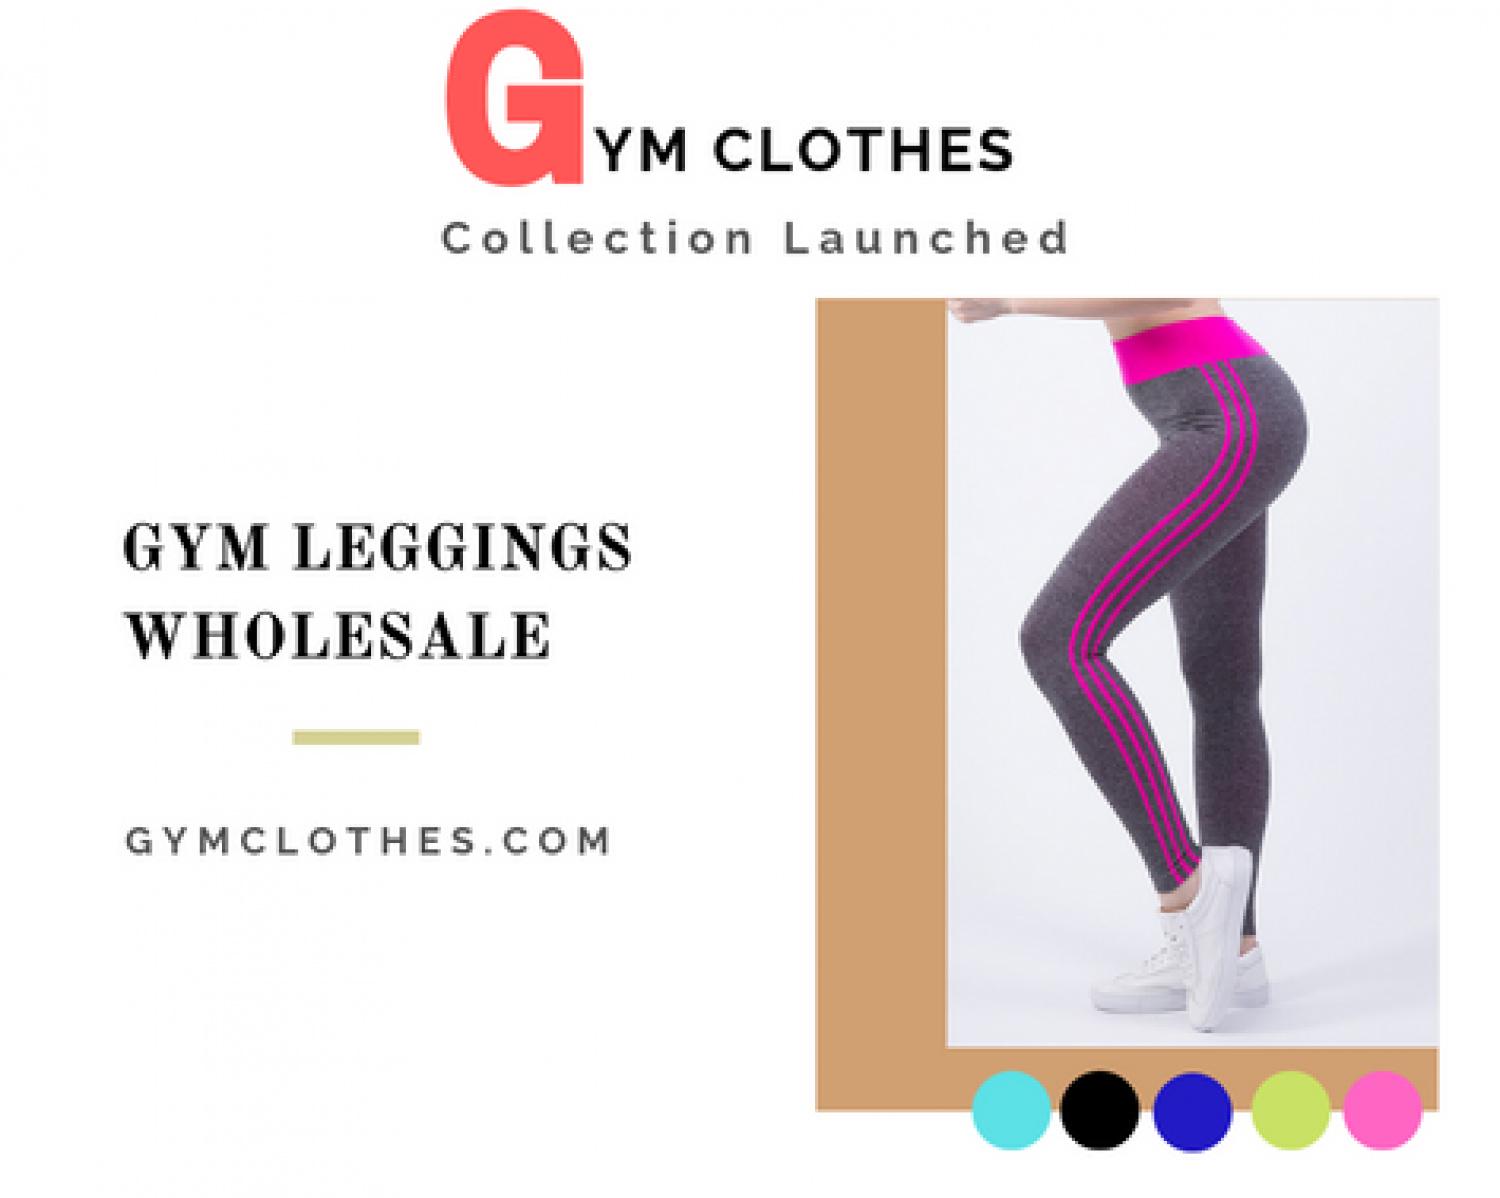 Yoga Leggings Manufacturers - Top Collection Of Wholesale Gym Pants Infographic